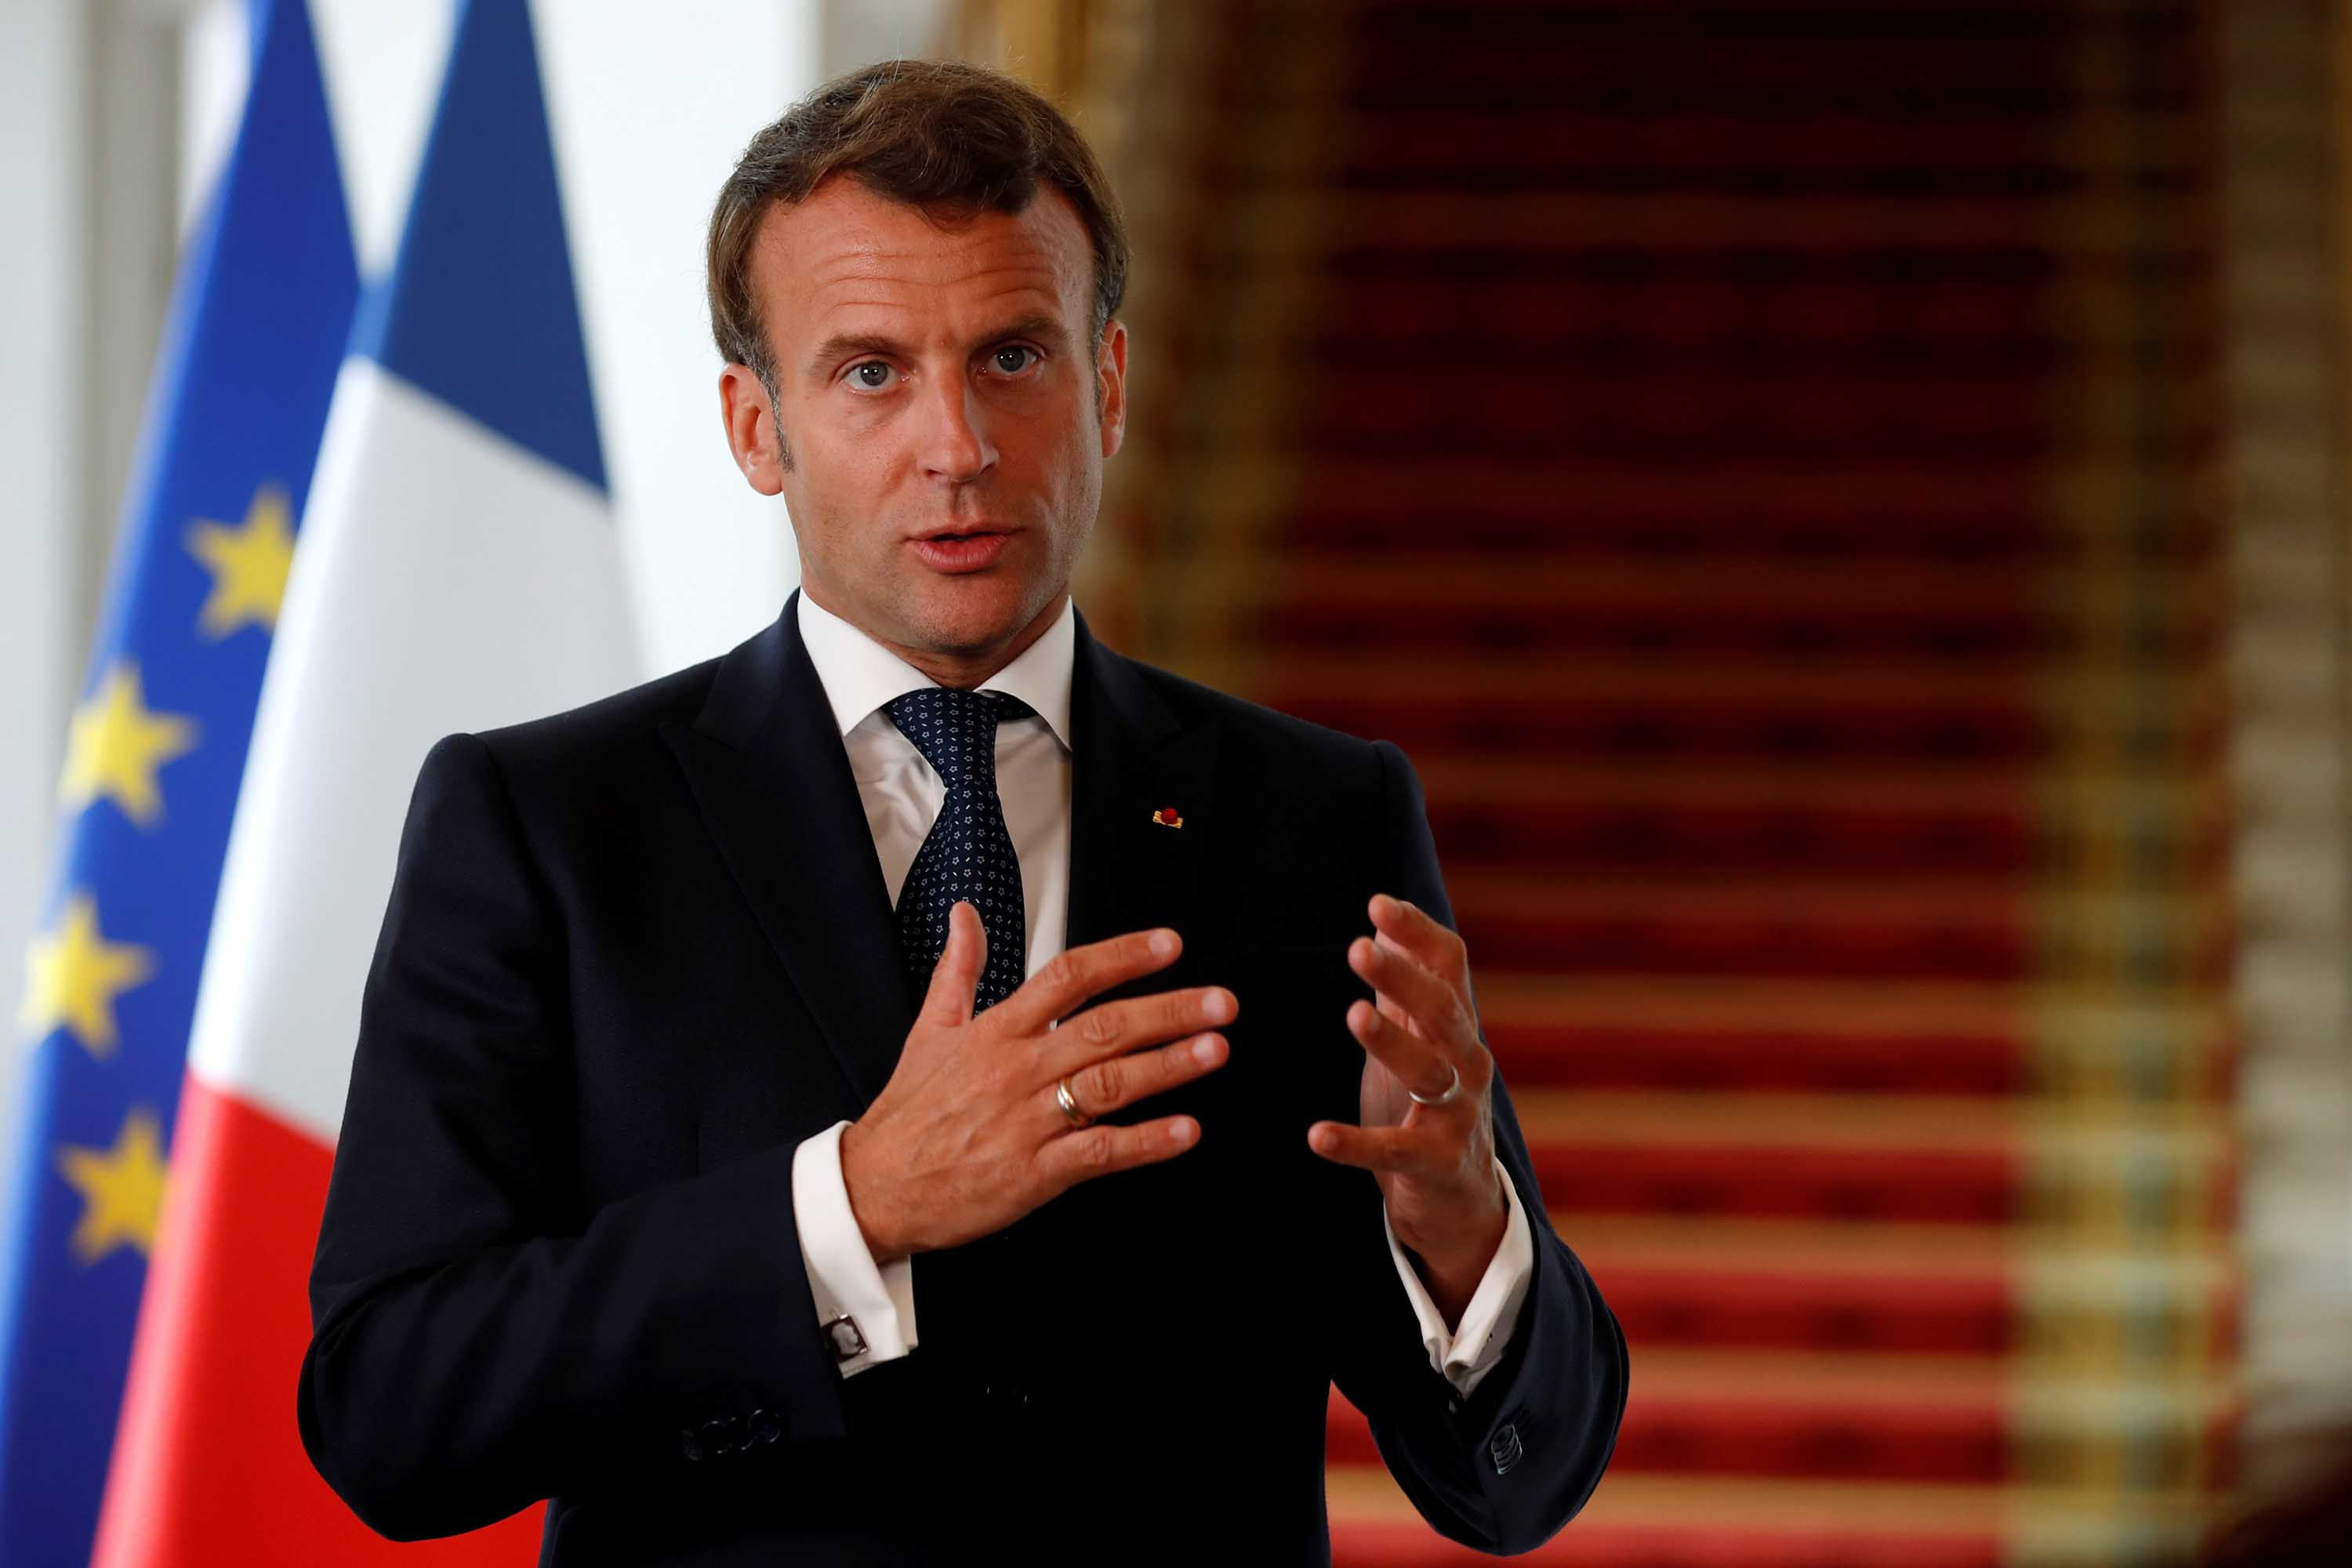 French President Emmanuel Macron delivers a statement from the Elysee Palace in Paris on May 4.